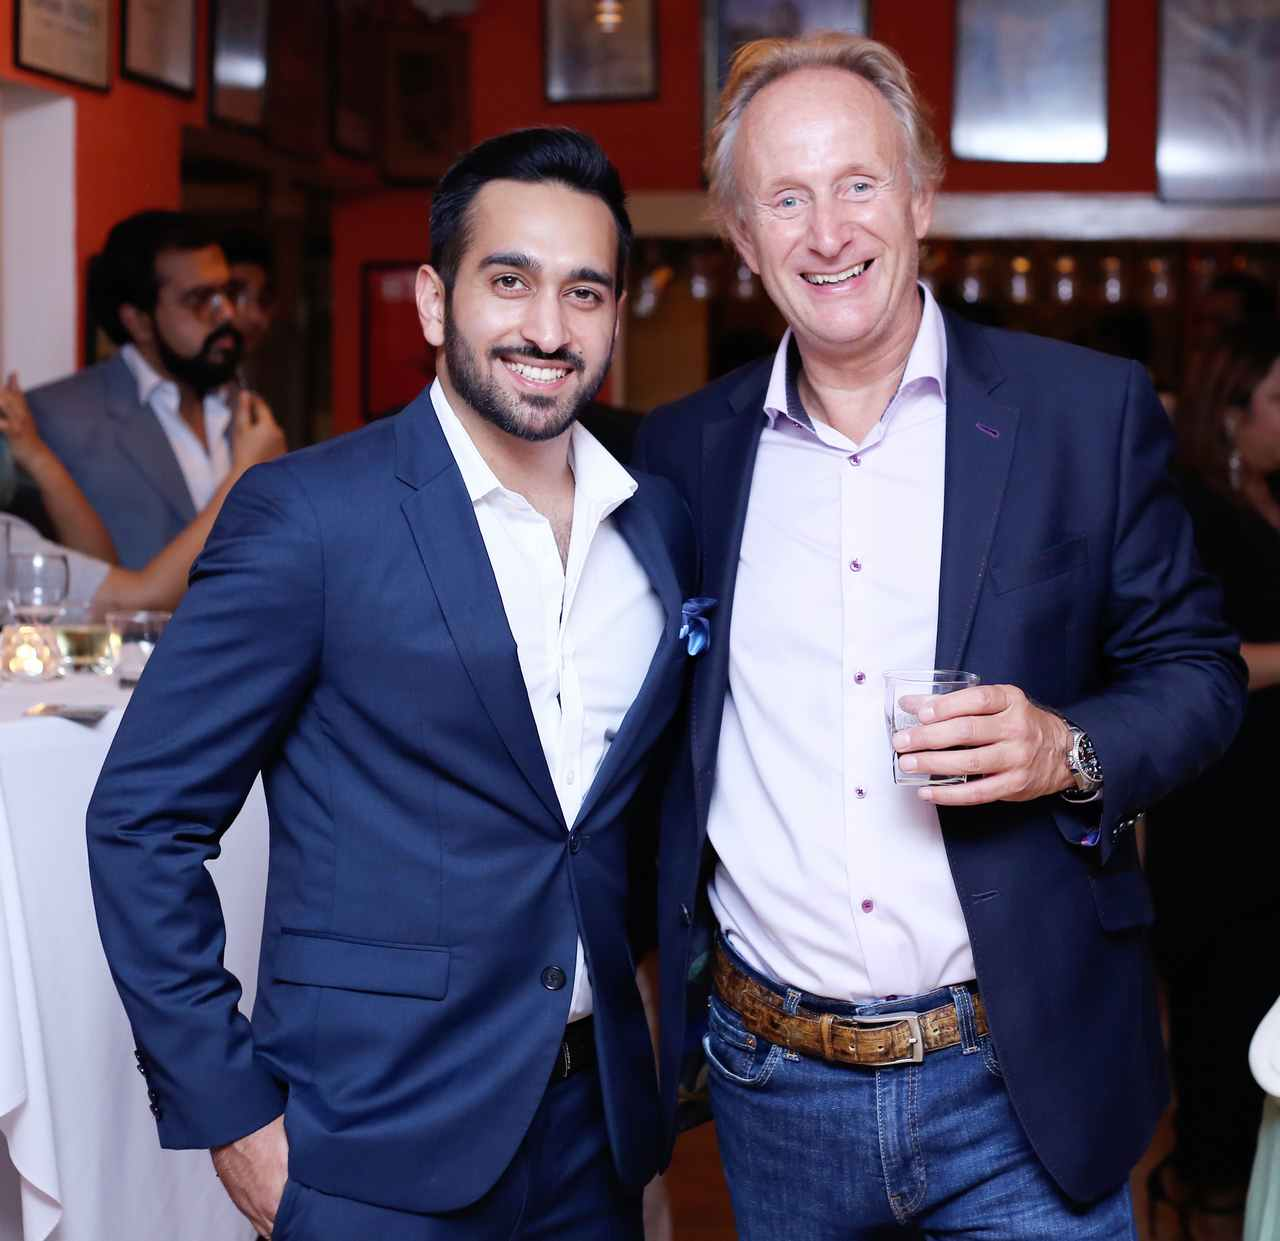 Faizan Majeed and Richard Sikkel were all smiles at the launch of Reviv's wellness therapy.